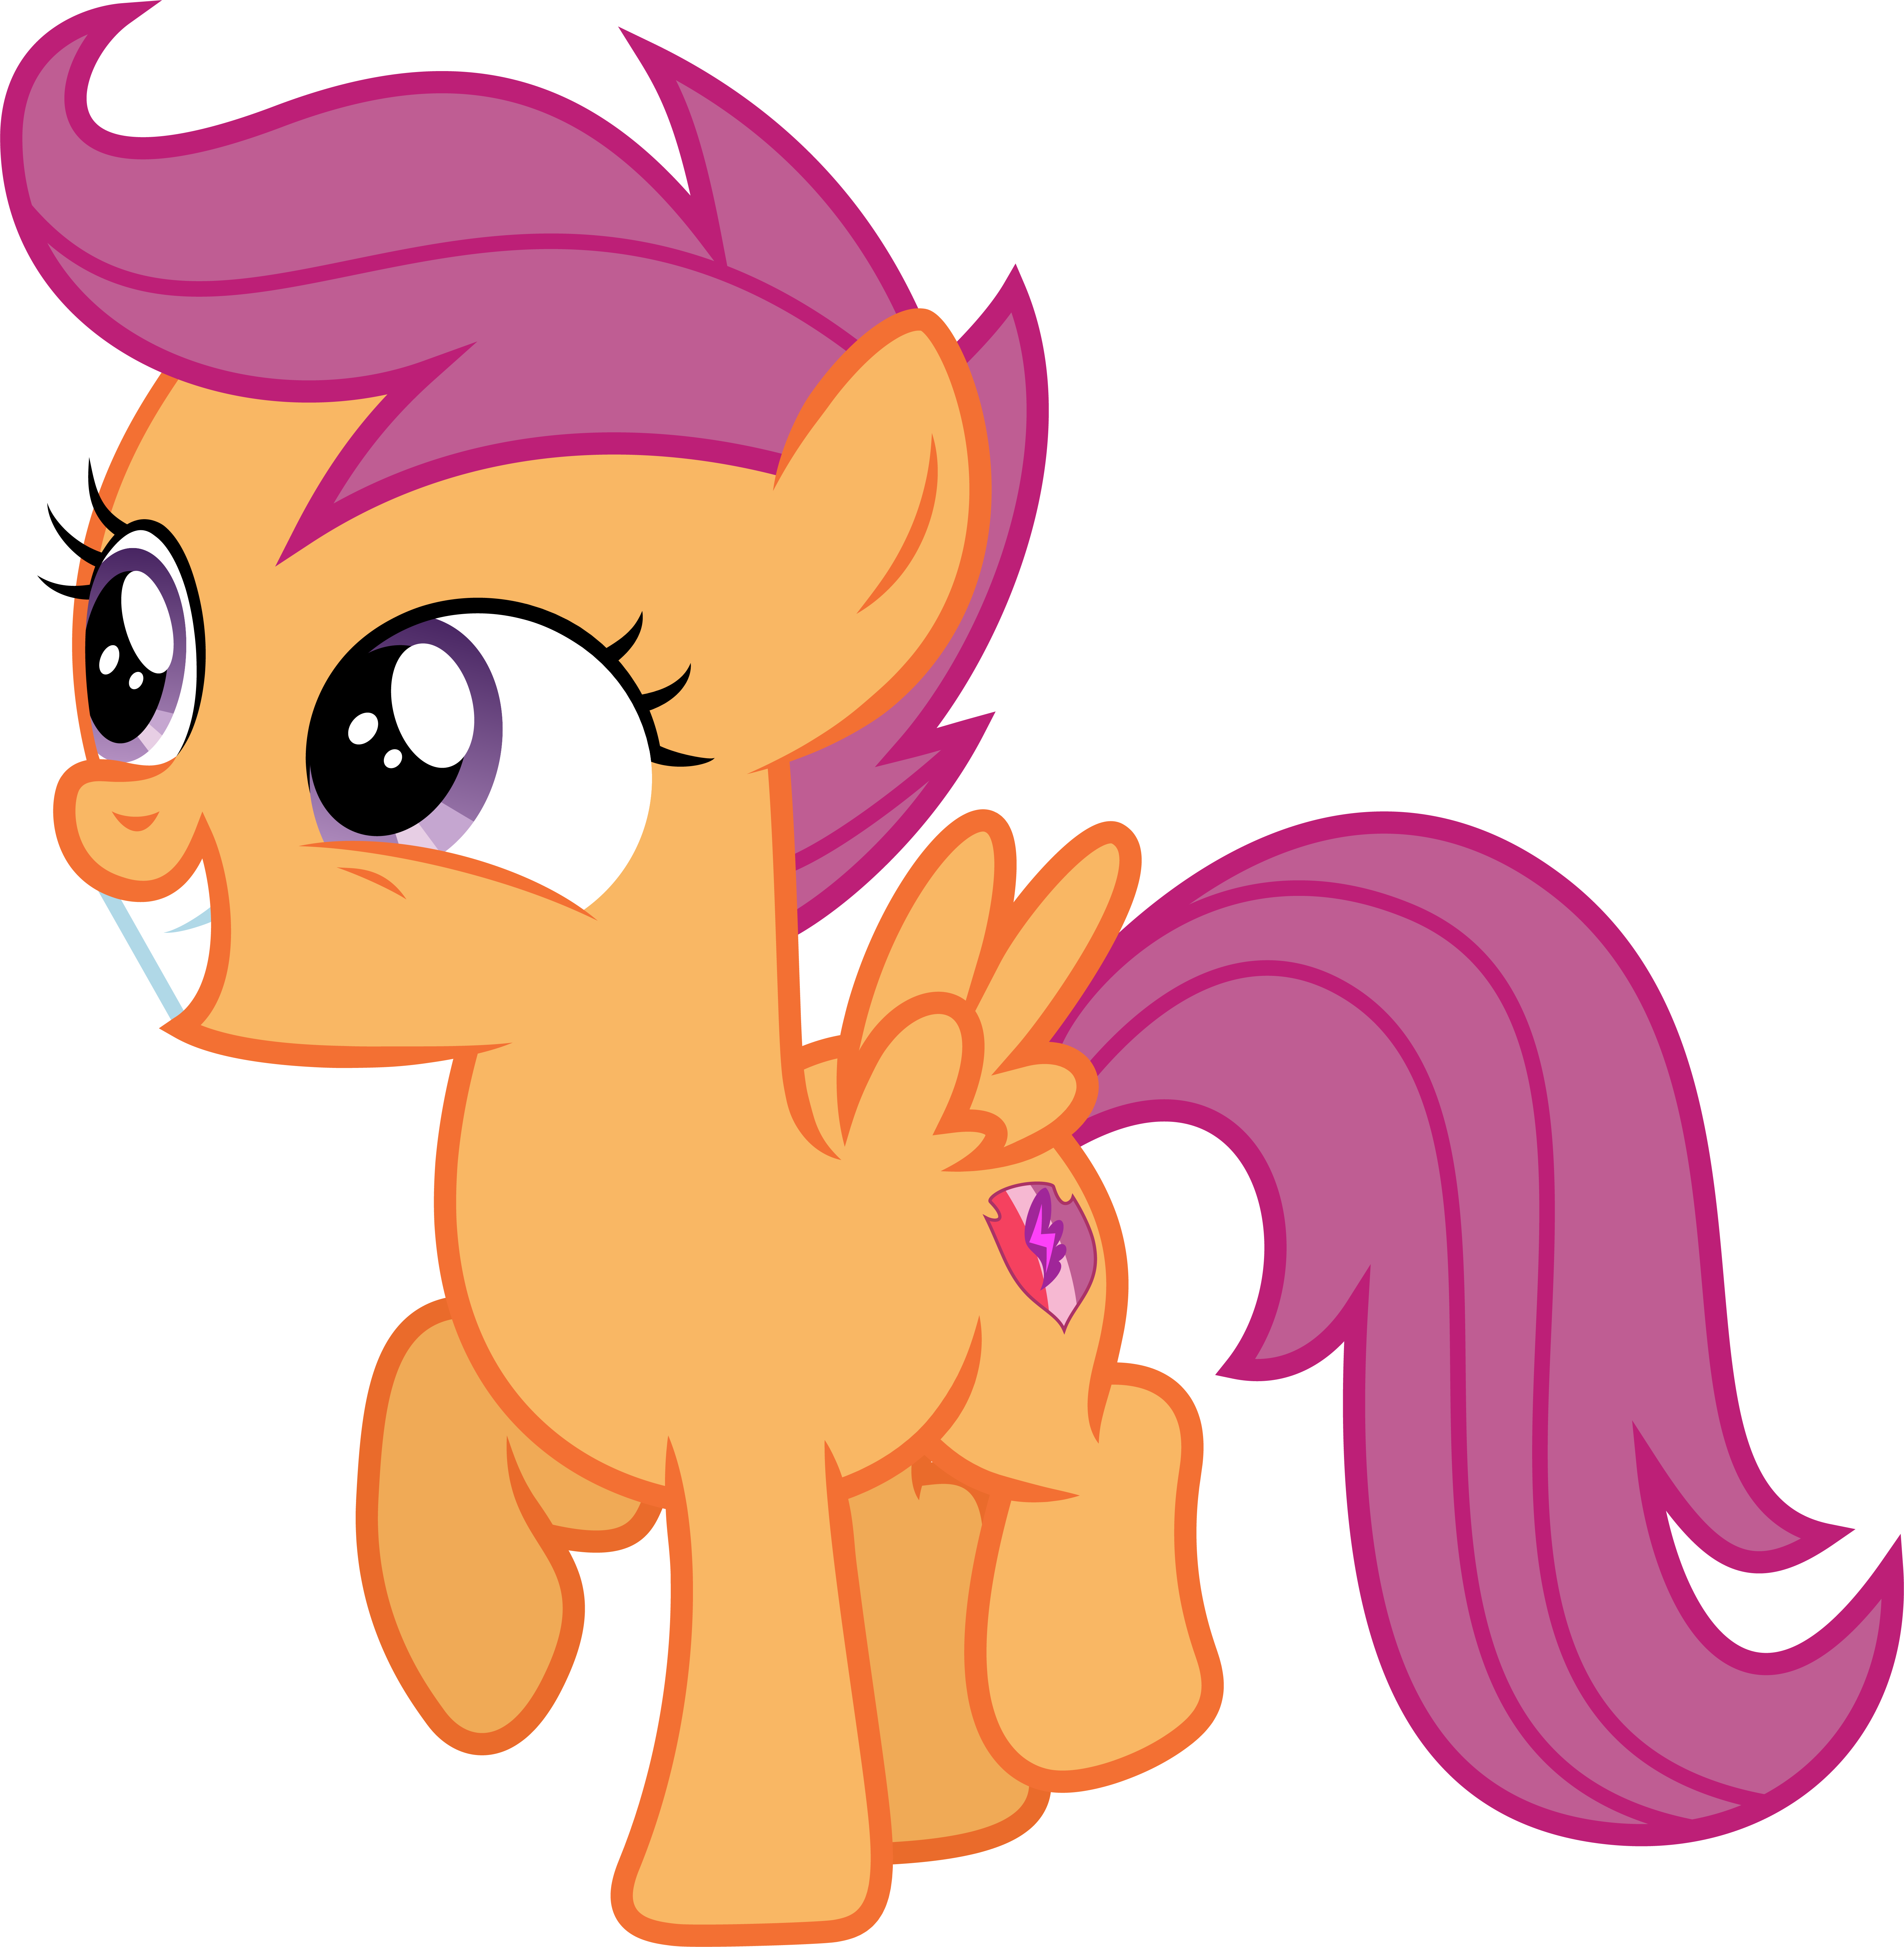 Vector Scootaloo 2 By Deratrox On Deviantart 5,619 🎉 best happy birthday ✅ free vector download for commercial use in ai, eps, cdr, svg vector illustration graphic art design format.birthday, happy birthday card, birthday cake, birthday card. deviantart